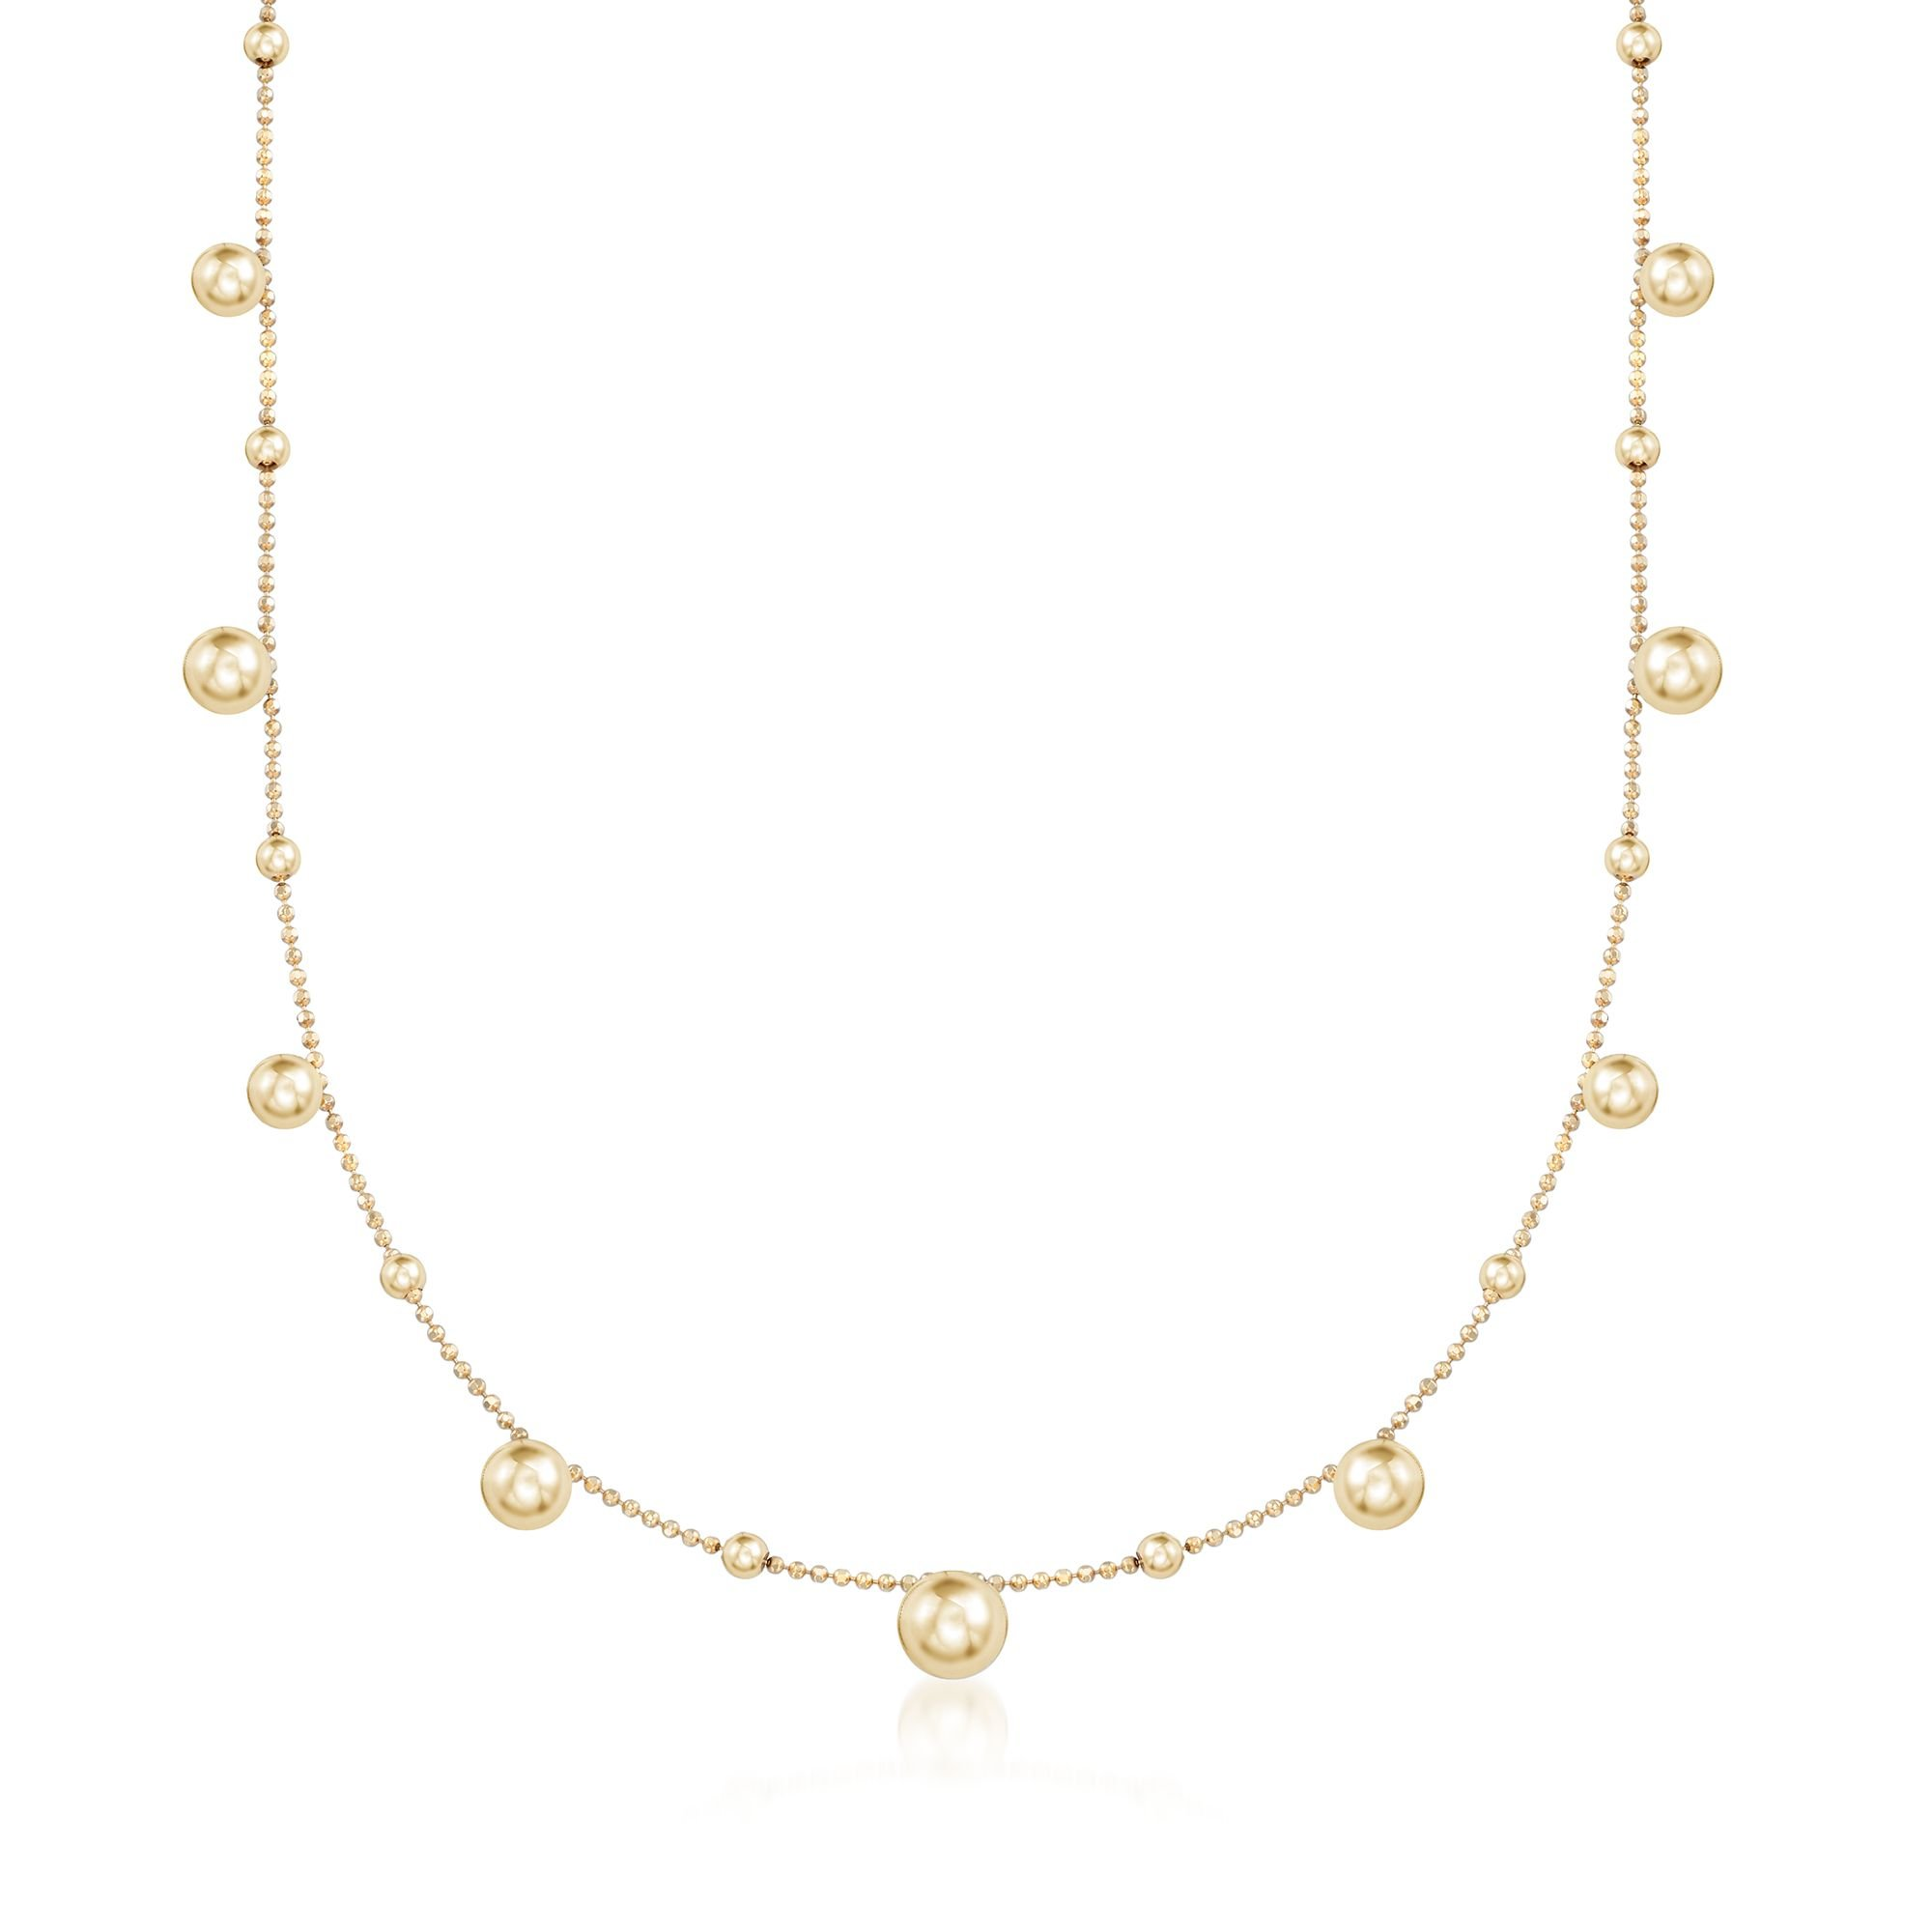 Ross-Simons Italian 18kt Yellow Gold Over Sterling Silver Multi-Bead Station Necklace